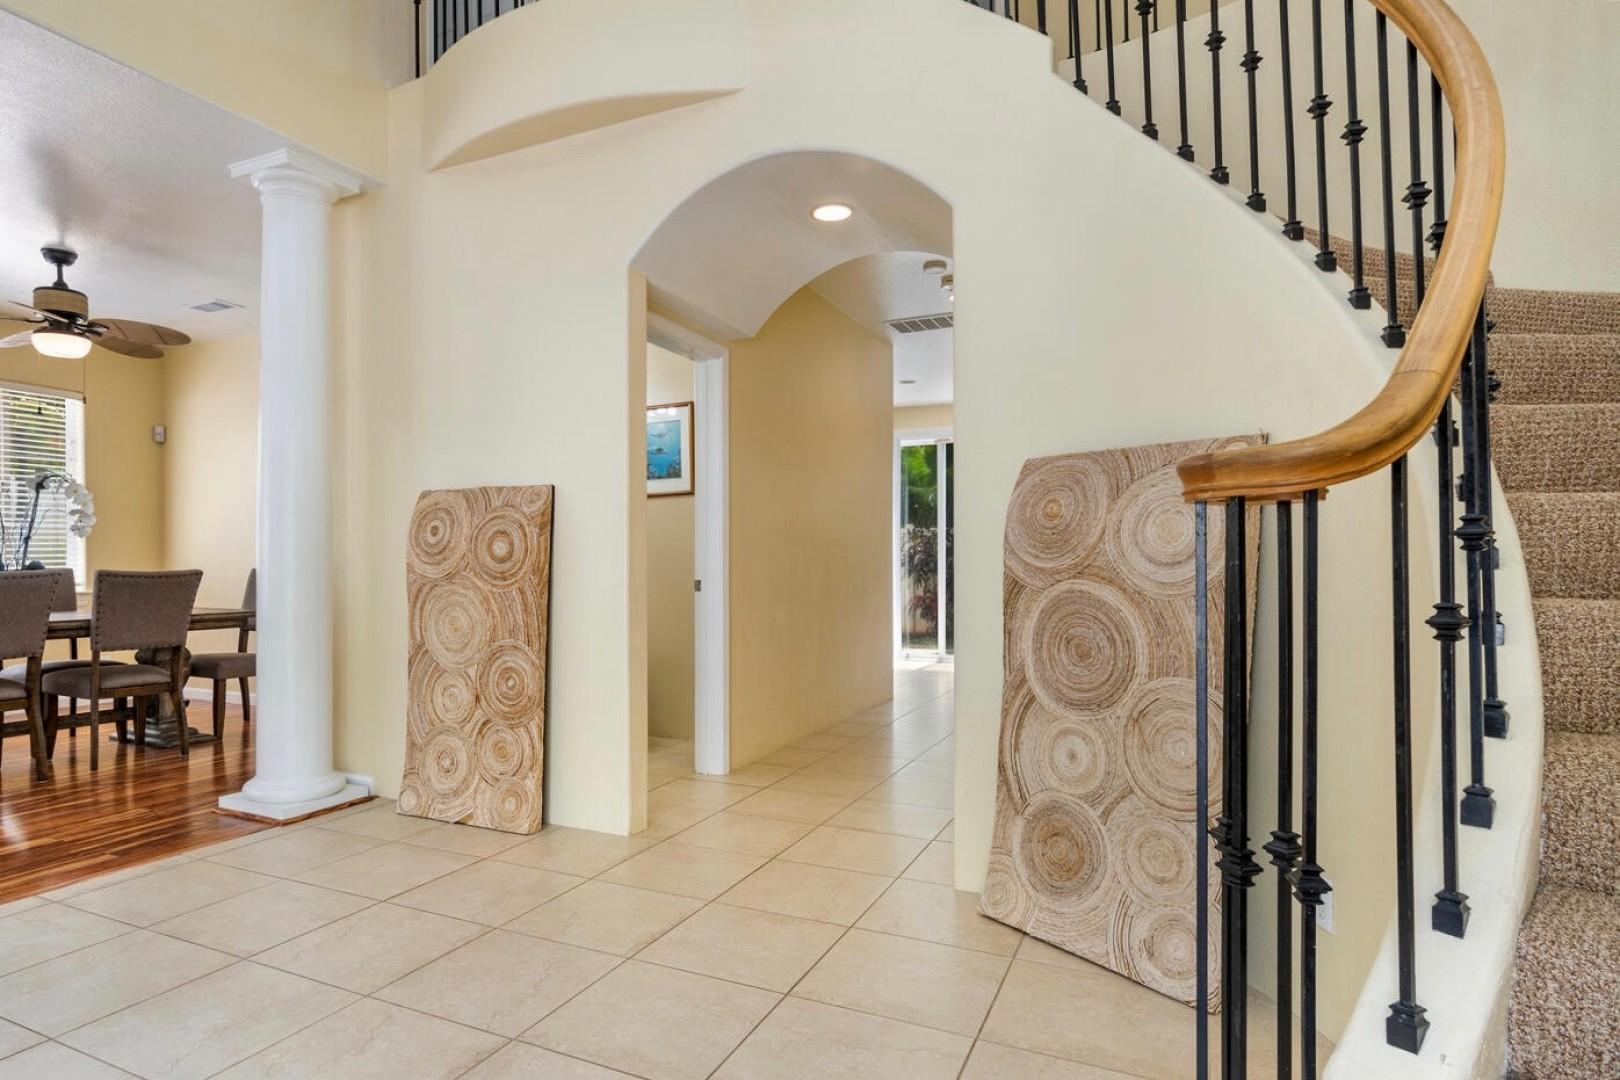 Entry way, leading to second level